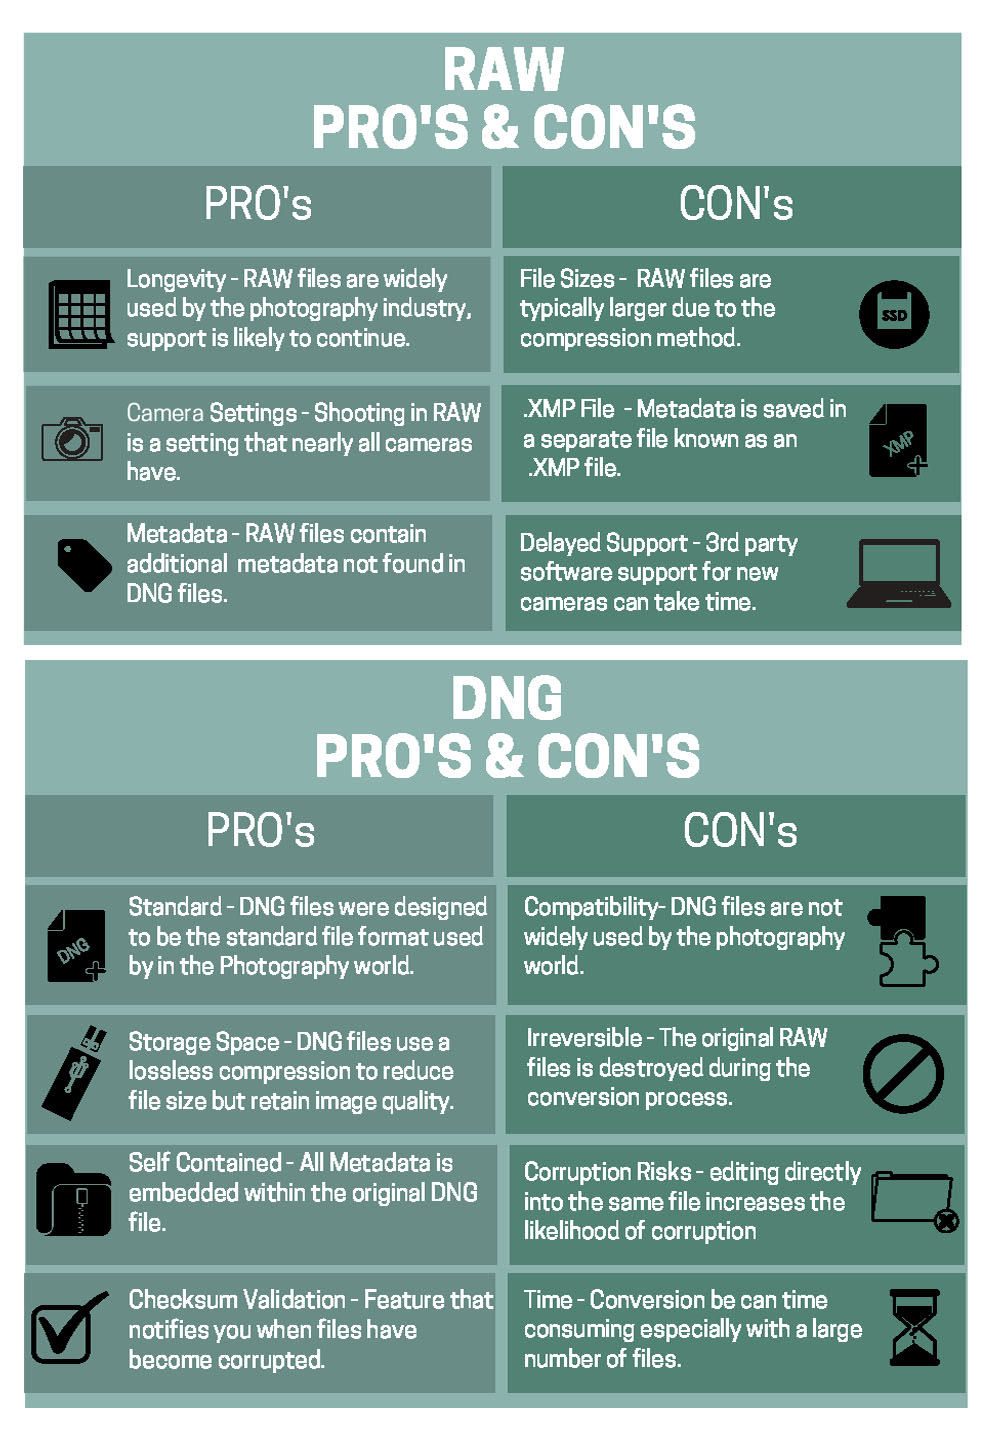 RAW vs DNG PRO's and CON's